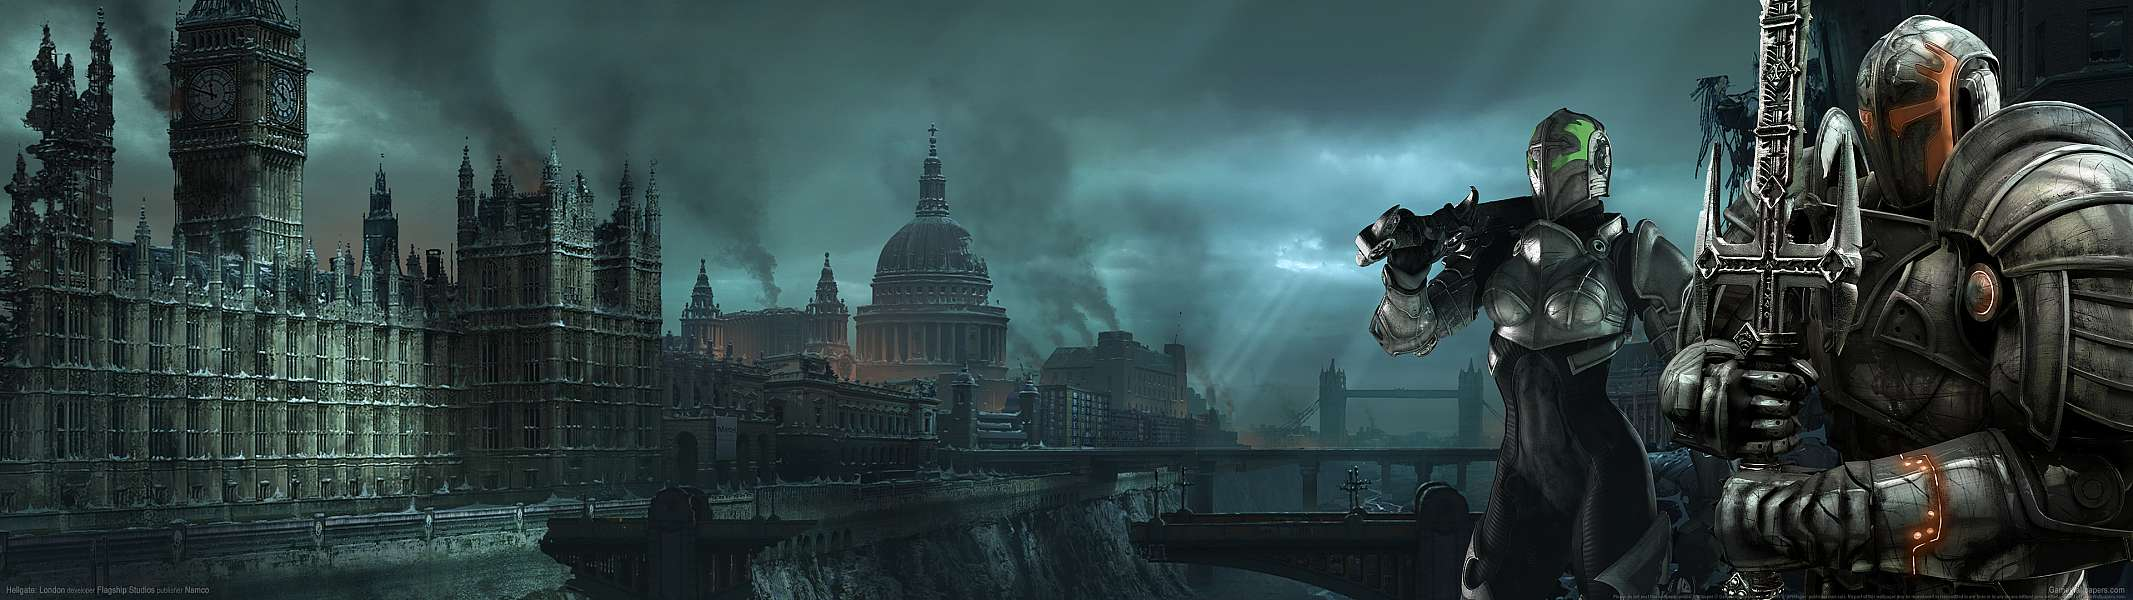 Hellgate: London dual screen wallpaper or background